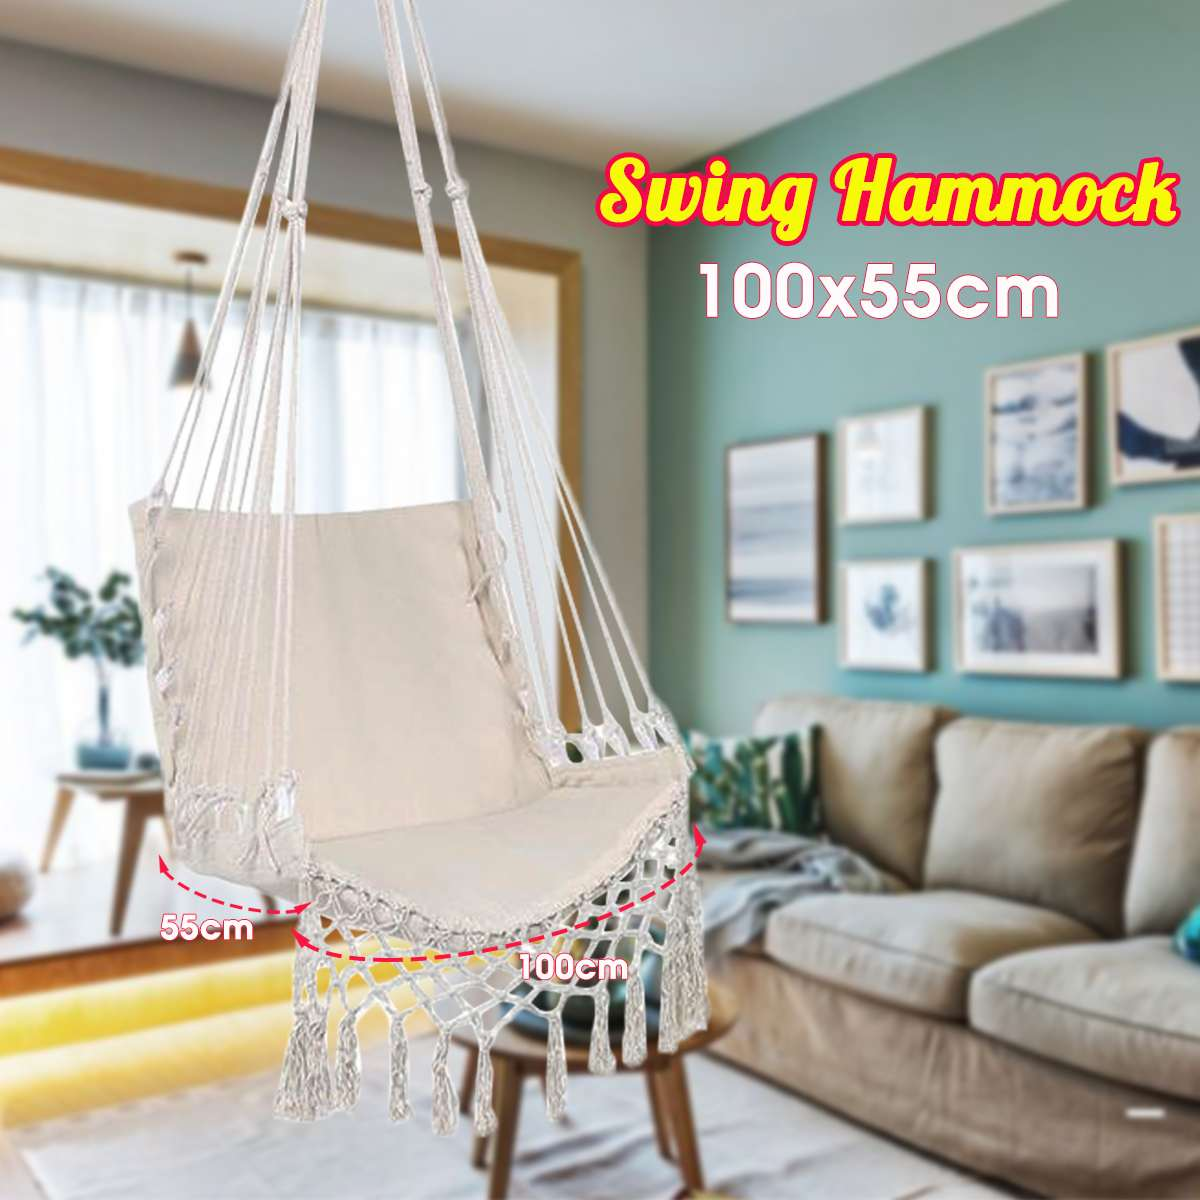 Nordic Style Ins Hammock White Hanging Chair Indoor Furniture